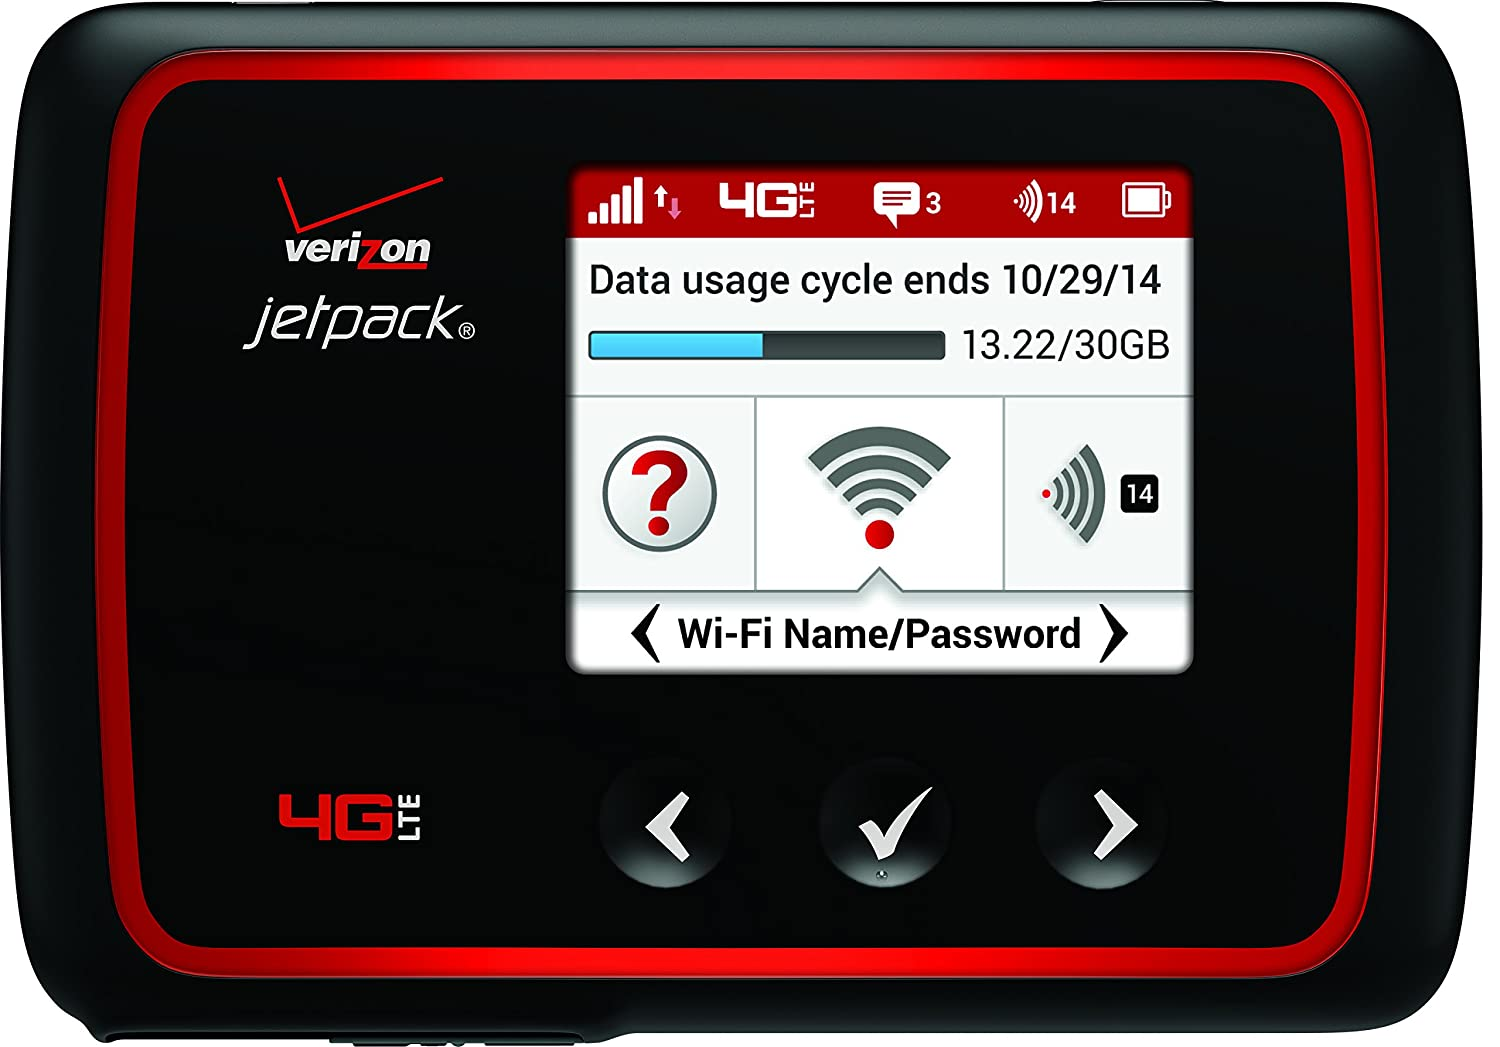 Verizon MiFi 6620L Jetpack 4G LTE Mobile Hotspot (Verizon Wireless)